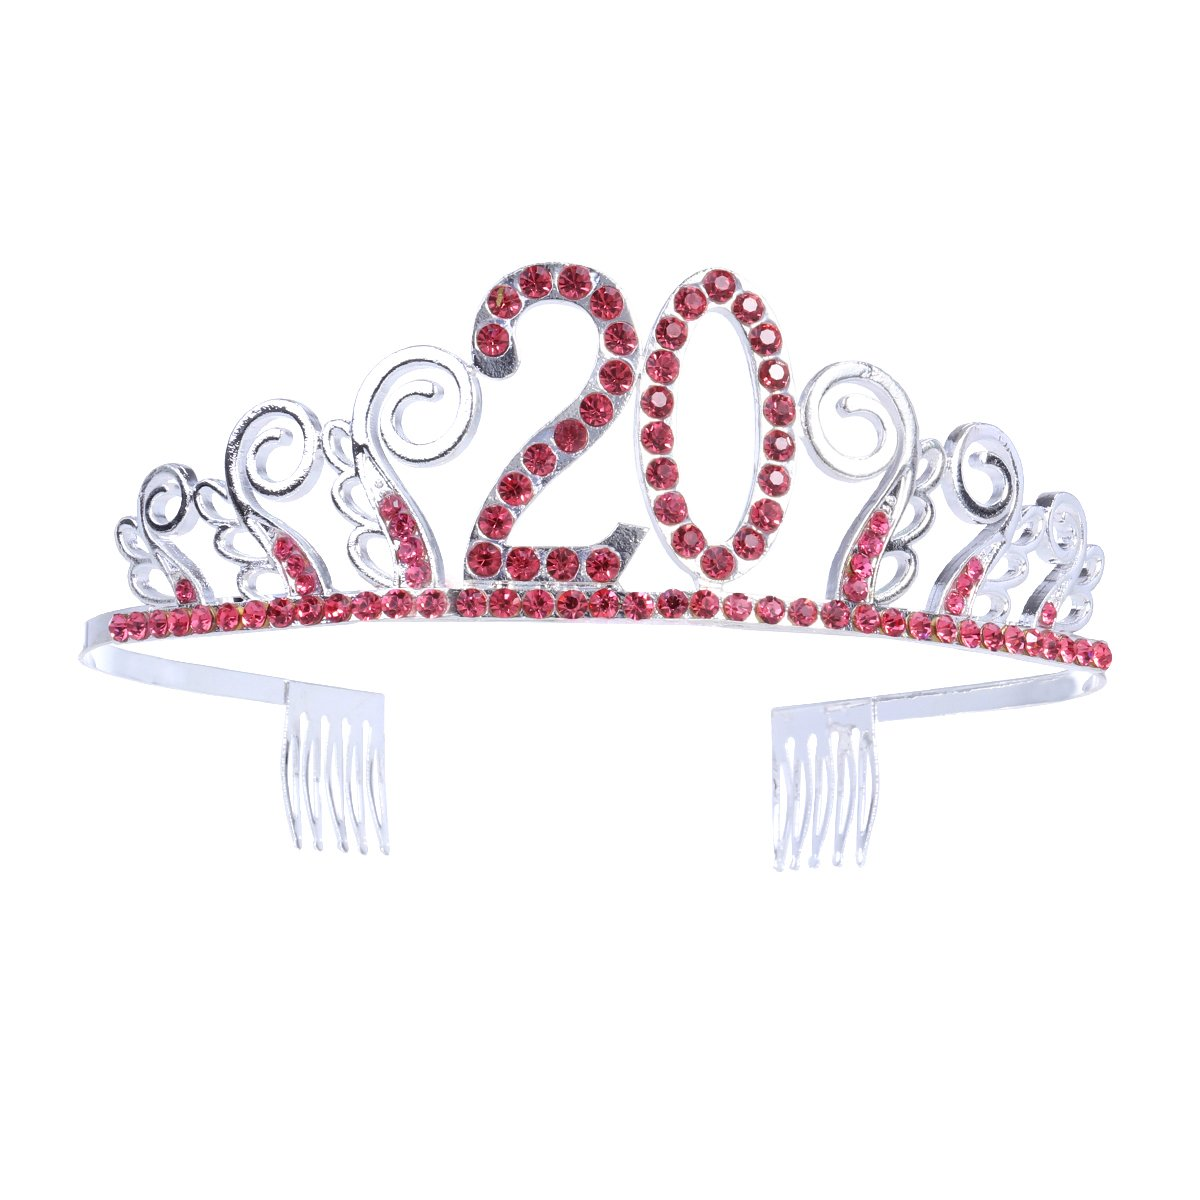 21th Birthday Crystal Tiara Queen Princess Crowns Dance Party Headband Red Rhinestone Hair Combs Clip for Girl's 21st Birthday Party Frcolor